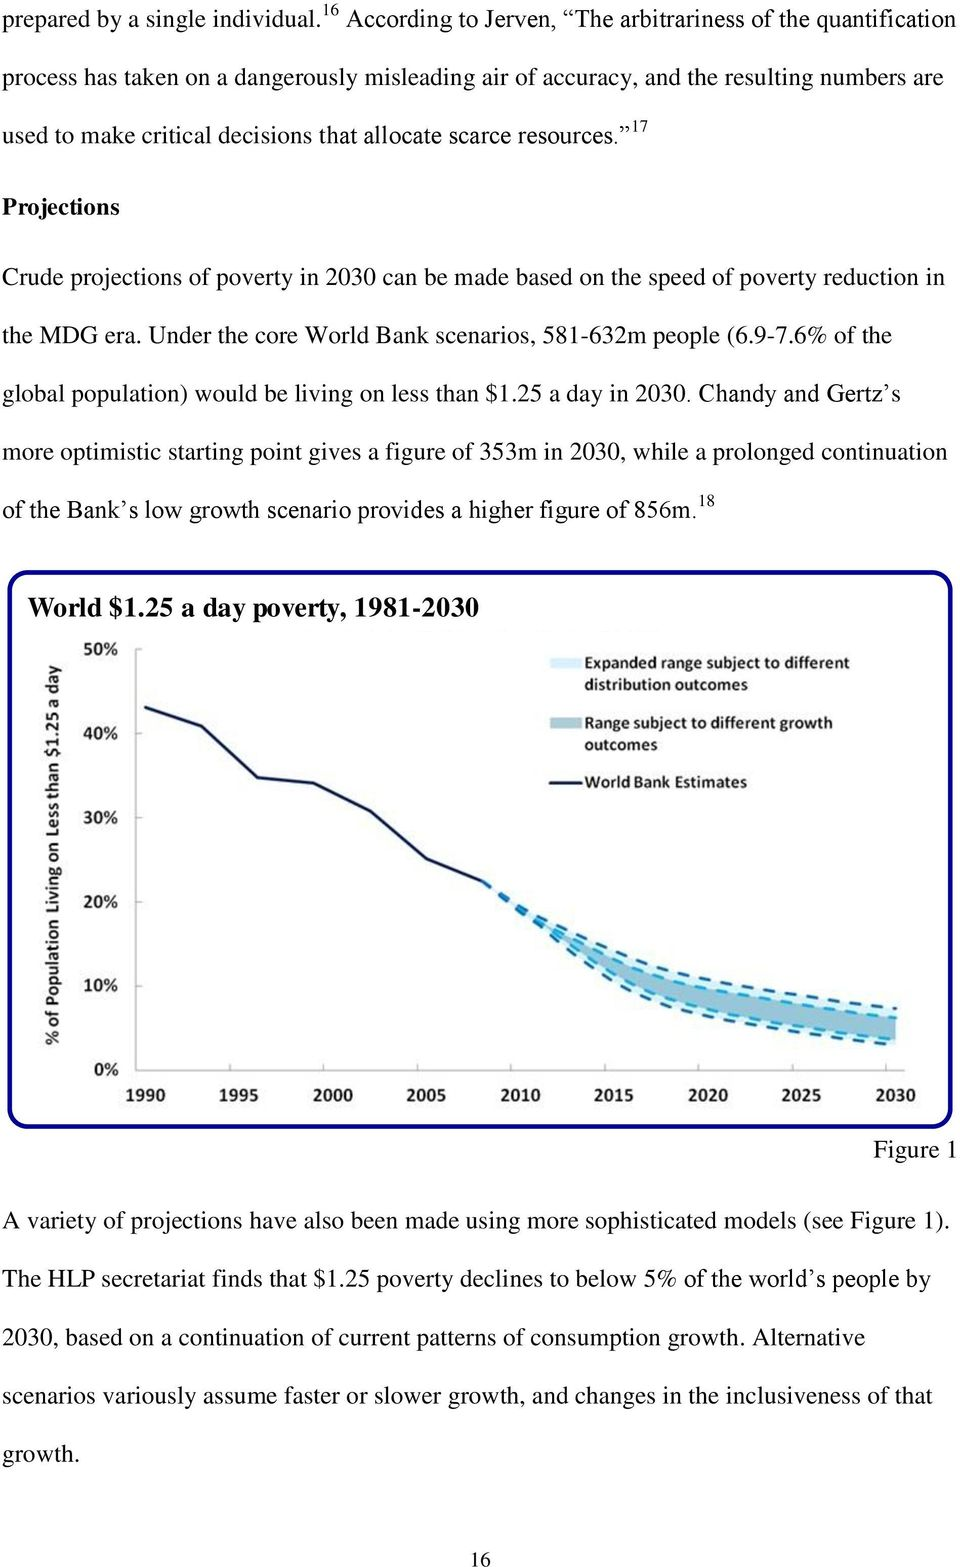 allocate scarce resources. 17 Projections Crude projections of poverty in 2030 can be made based on the speed of poverty reduction in the MDG era.